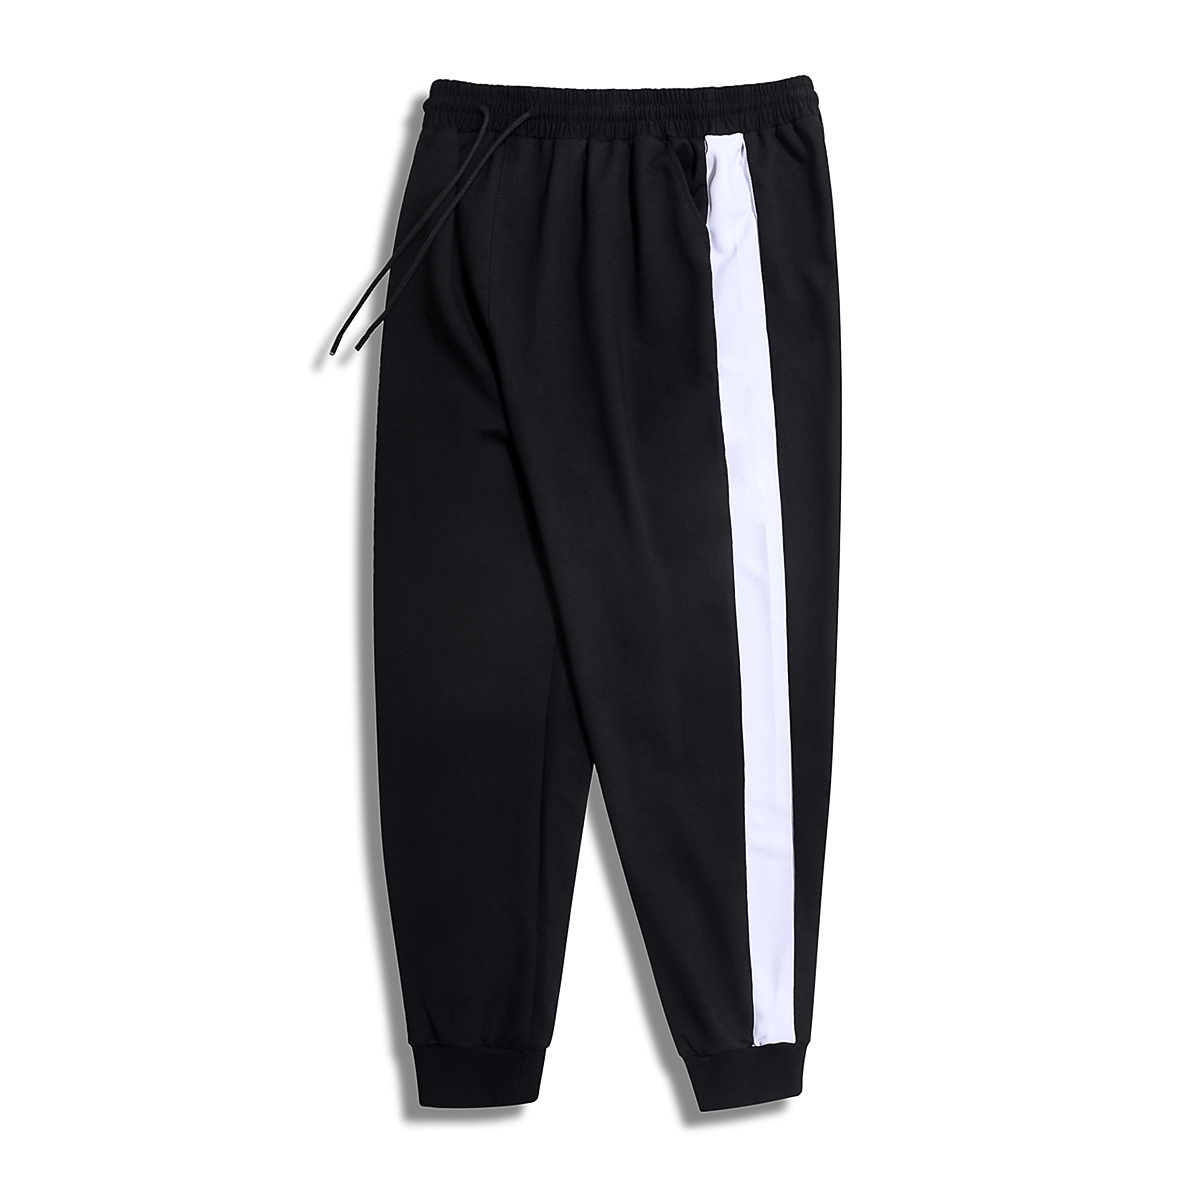 Plus Size 7xl 6xl 5xl 4XL MenSport Sweatpants Jogging Cotton Streetwear Plus Size Outdoor Trousers Male Running Fitness Pants